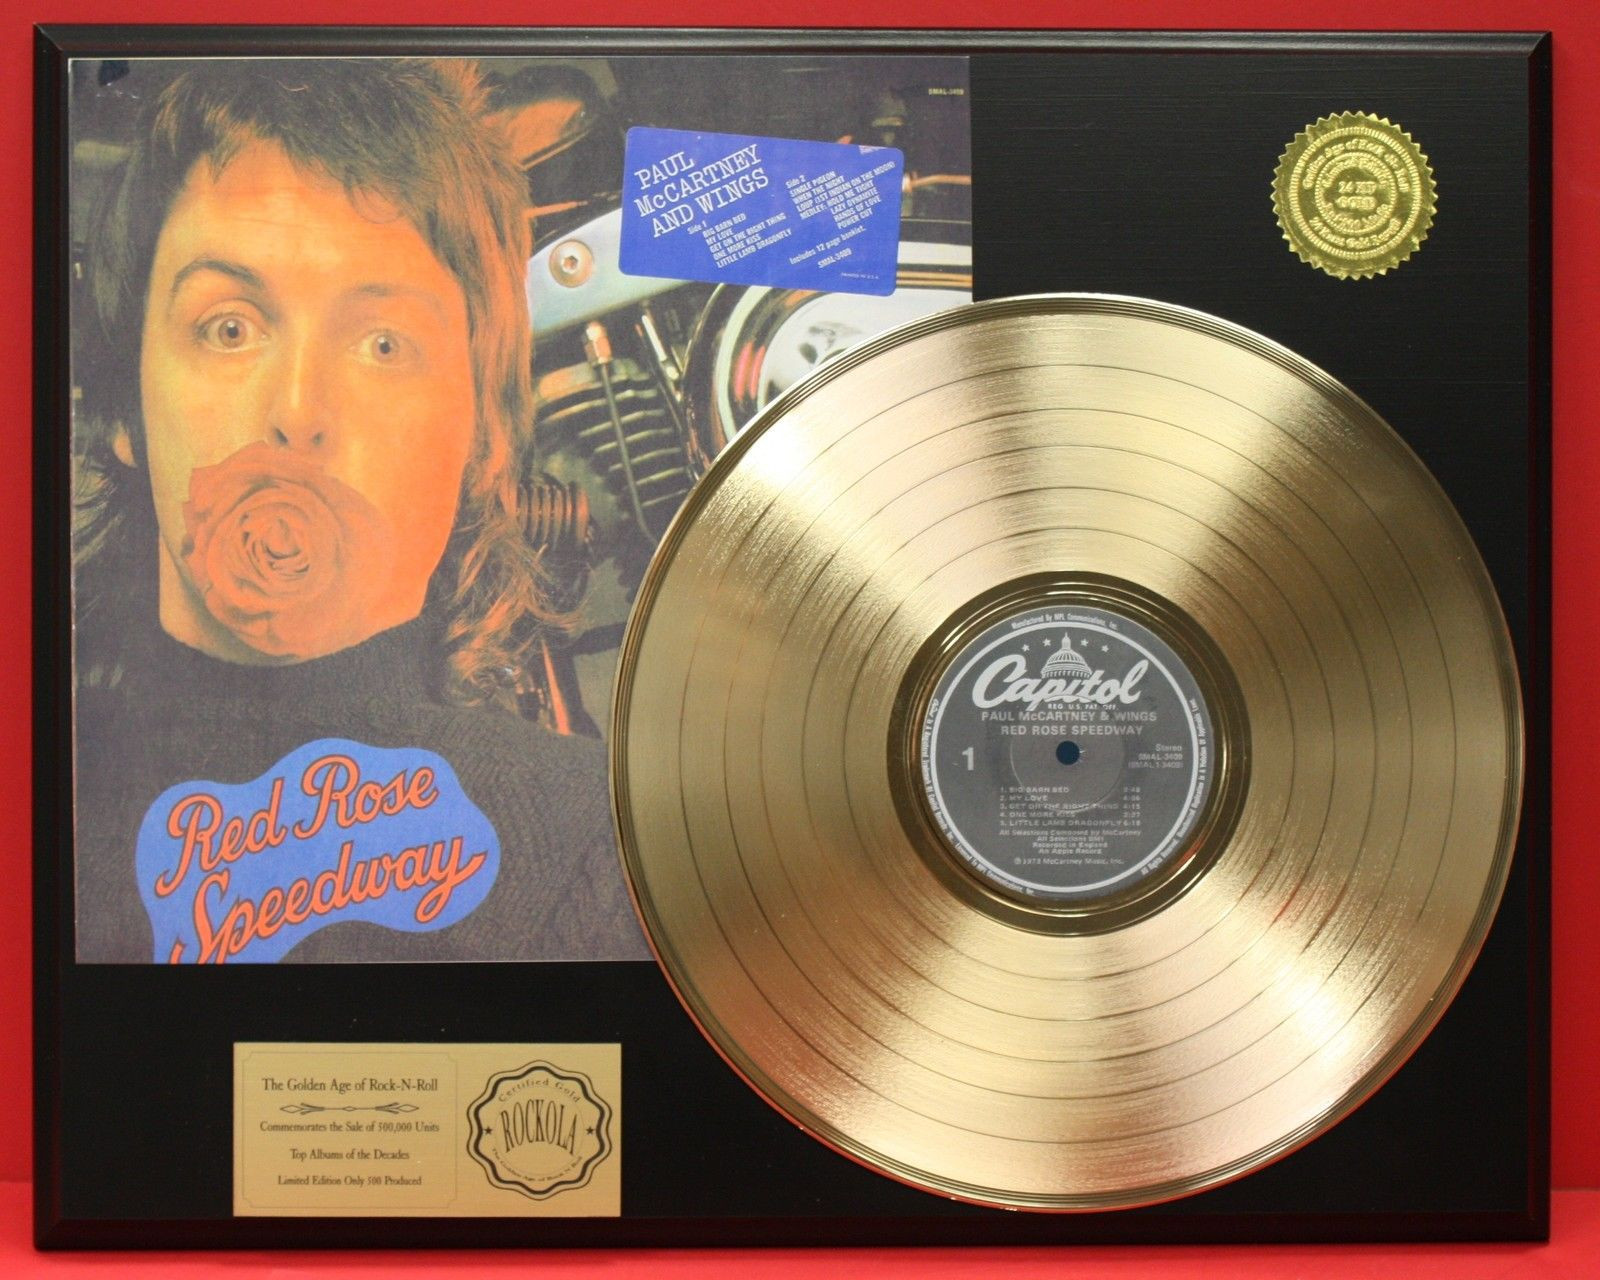 Red Rose Speedway: McCartney's most melodic album  And, by